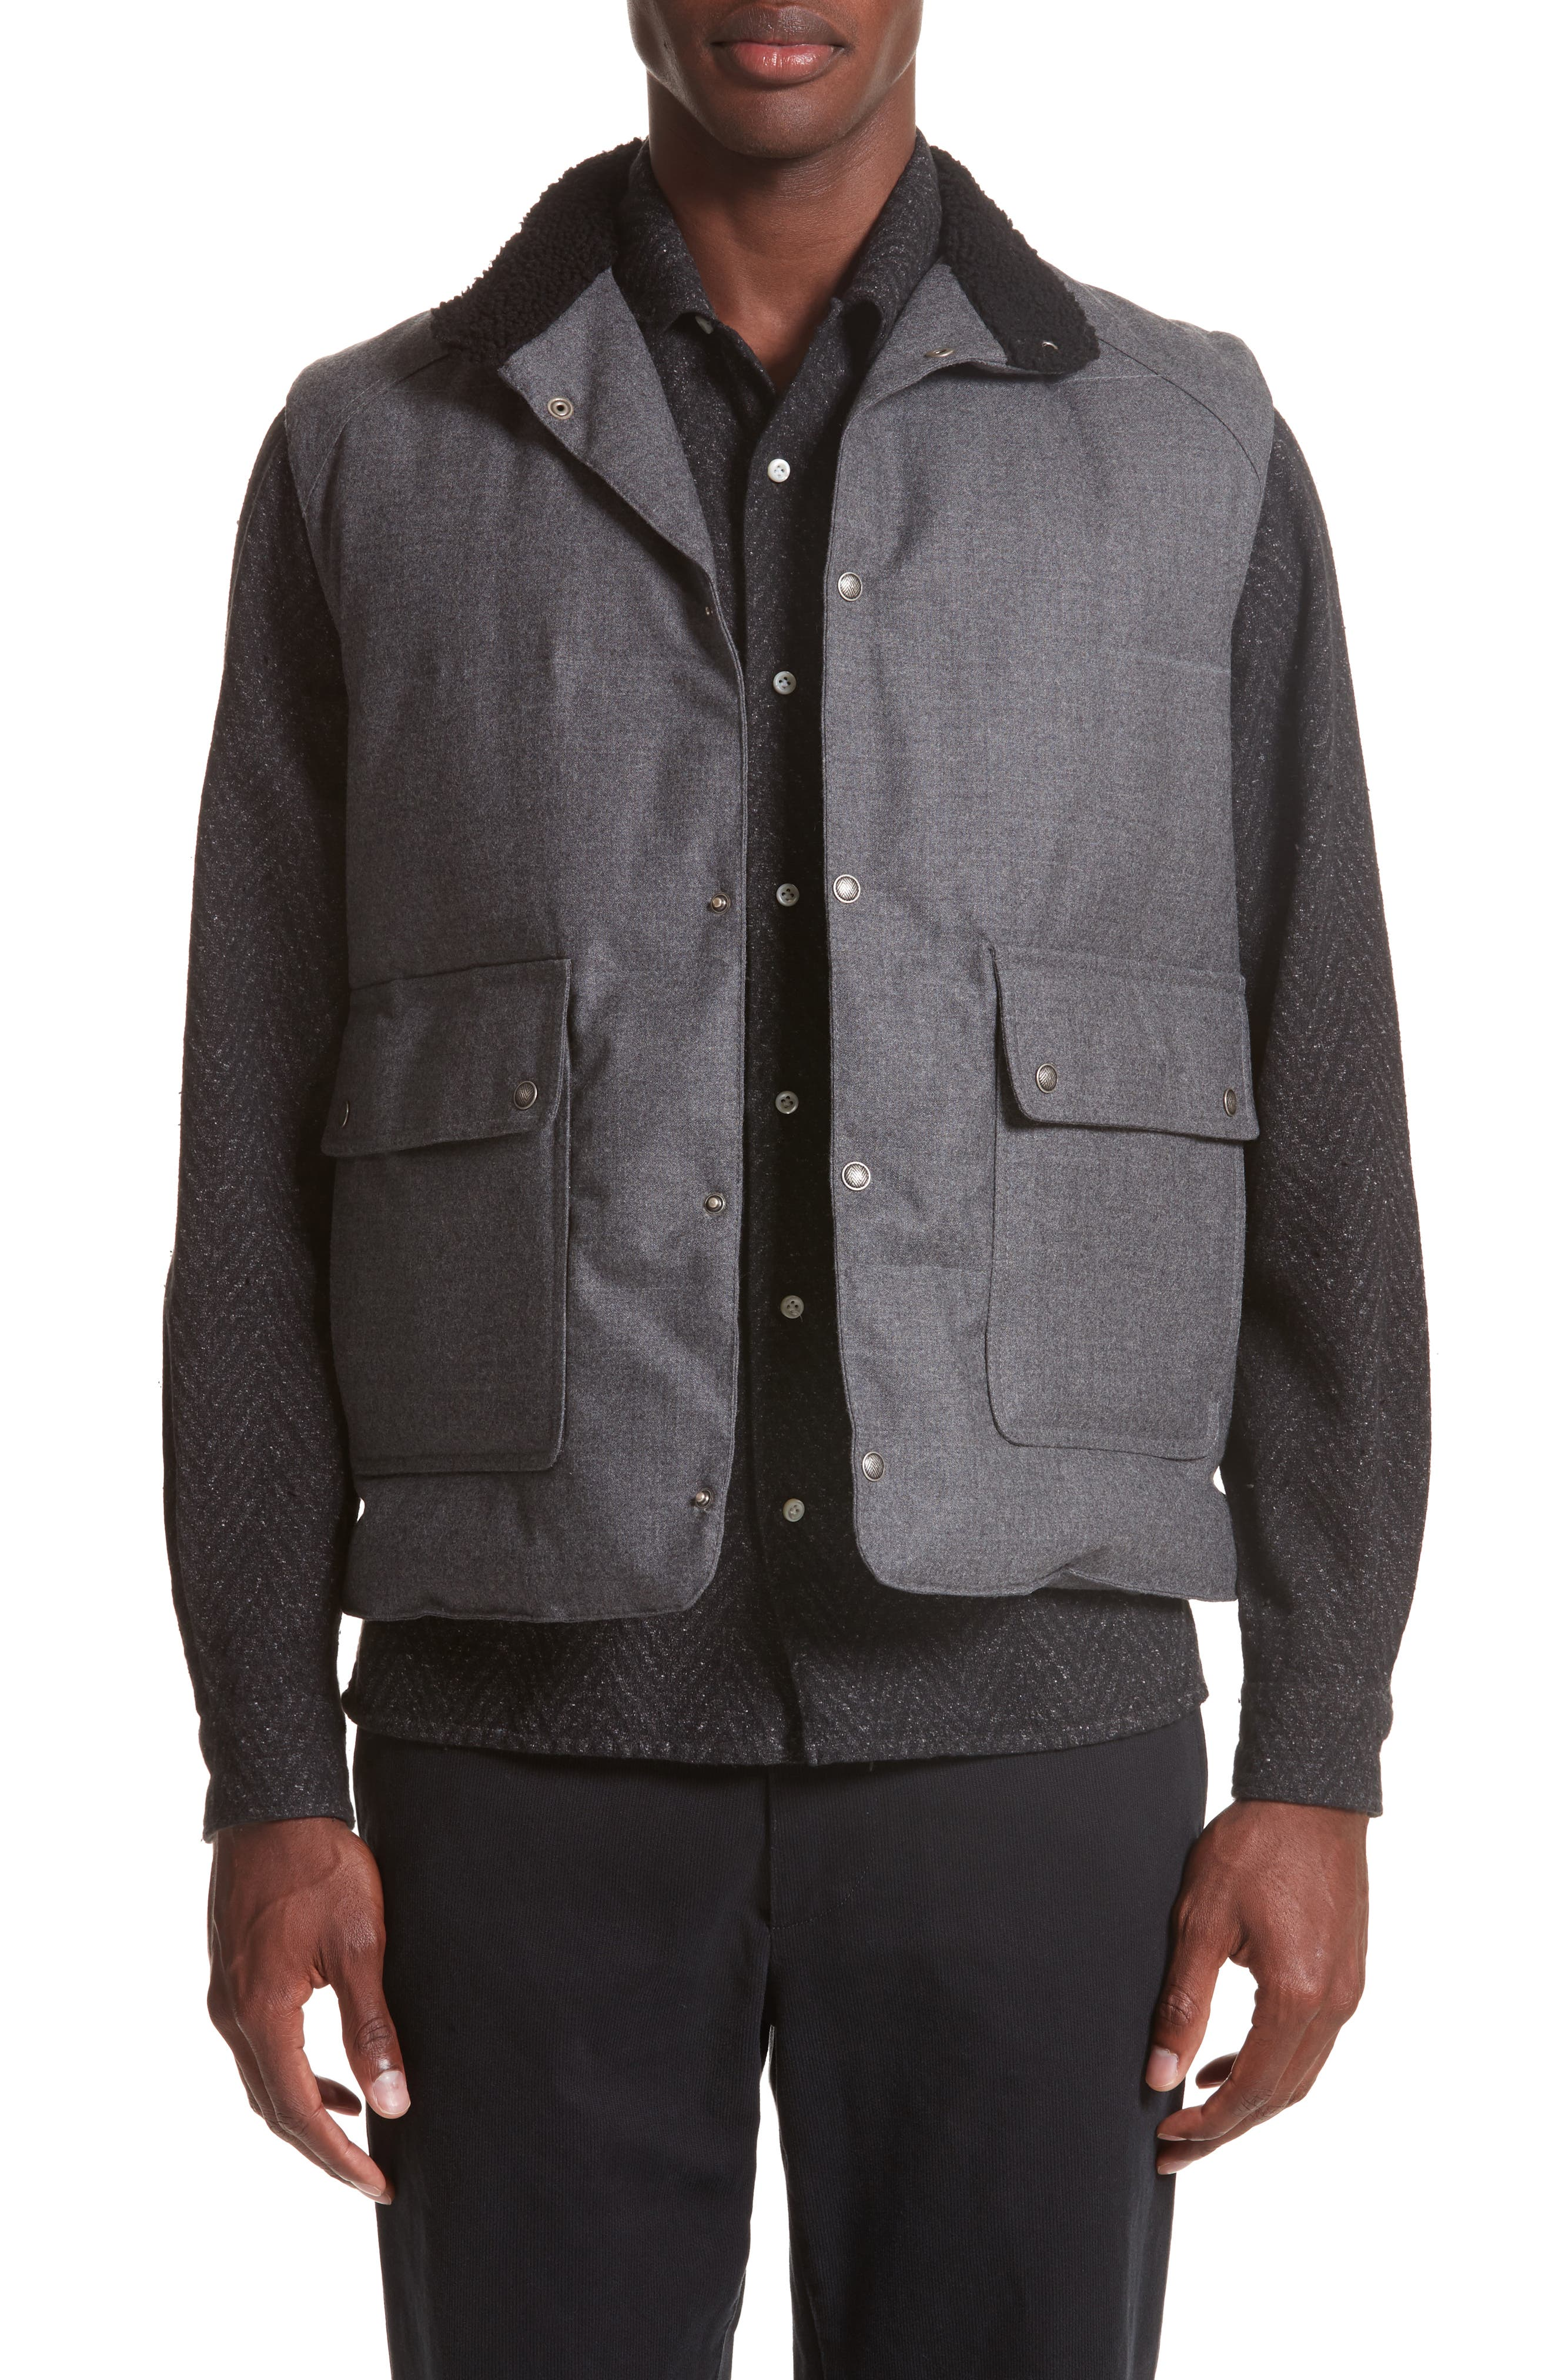 Eidos Napoli Water Resistant Wool Down Vest with Genuine Shearling Collar